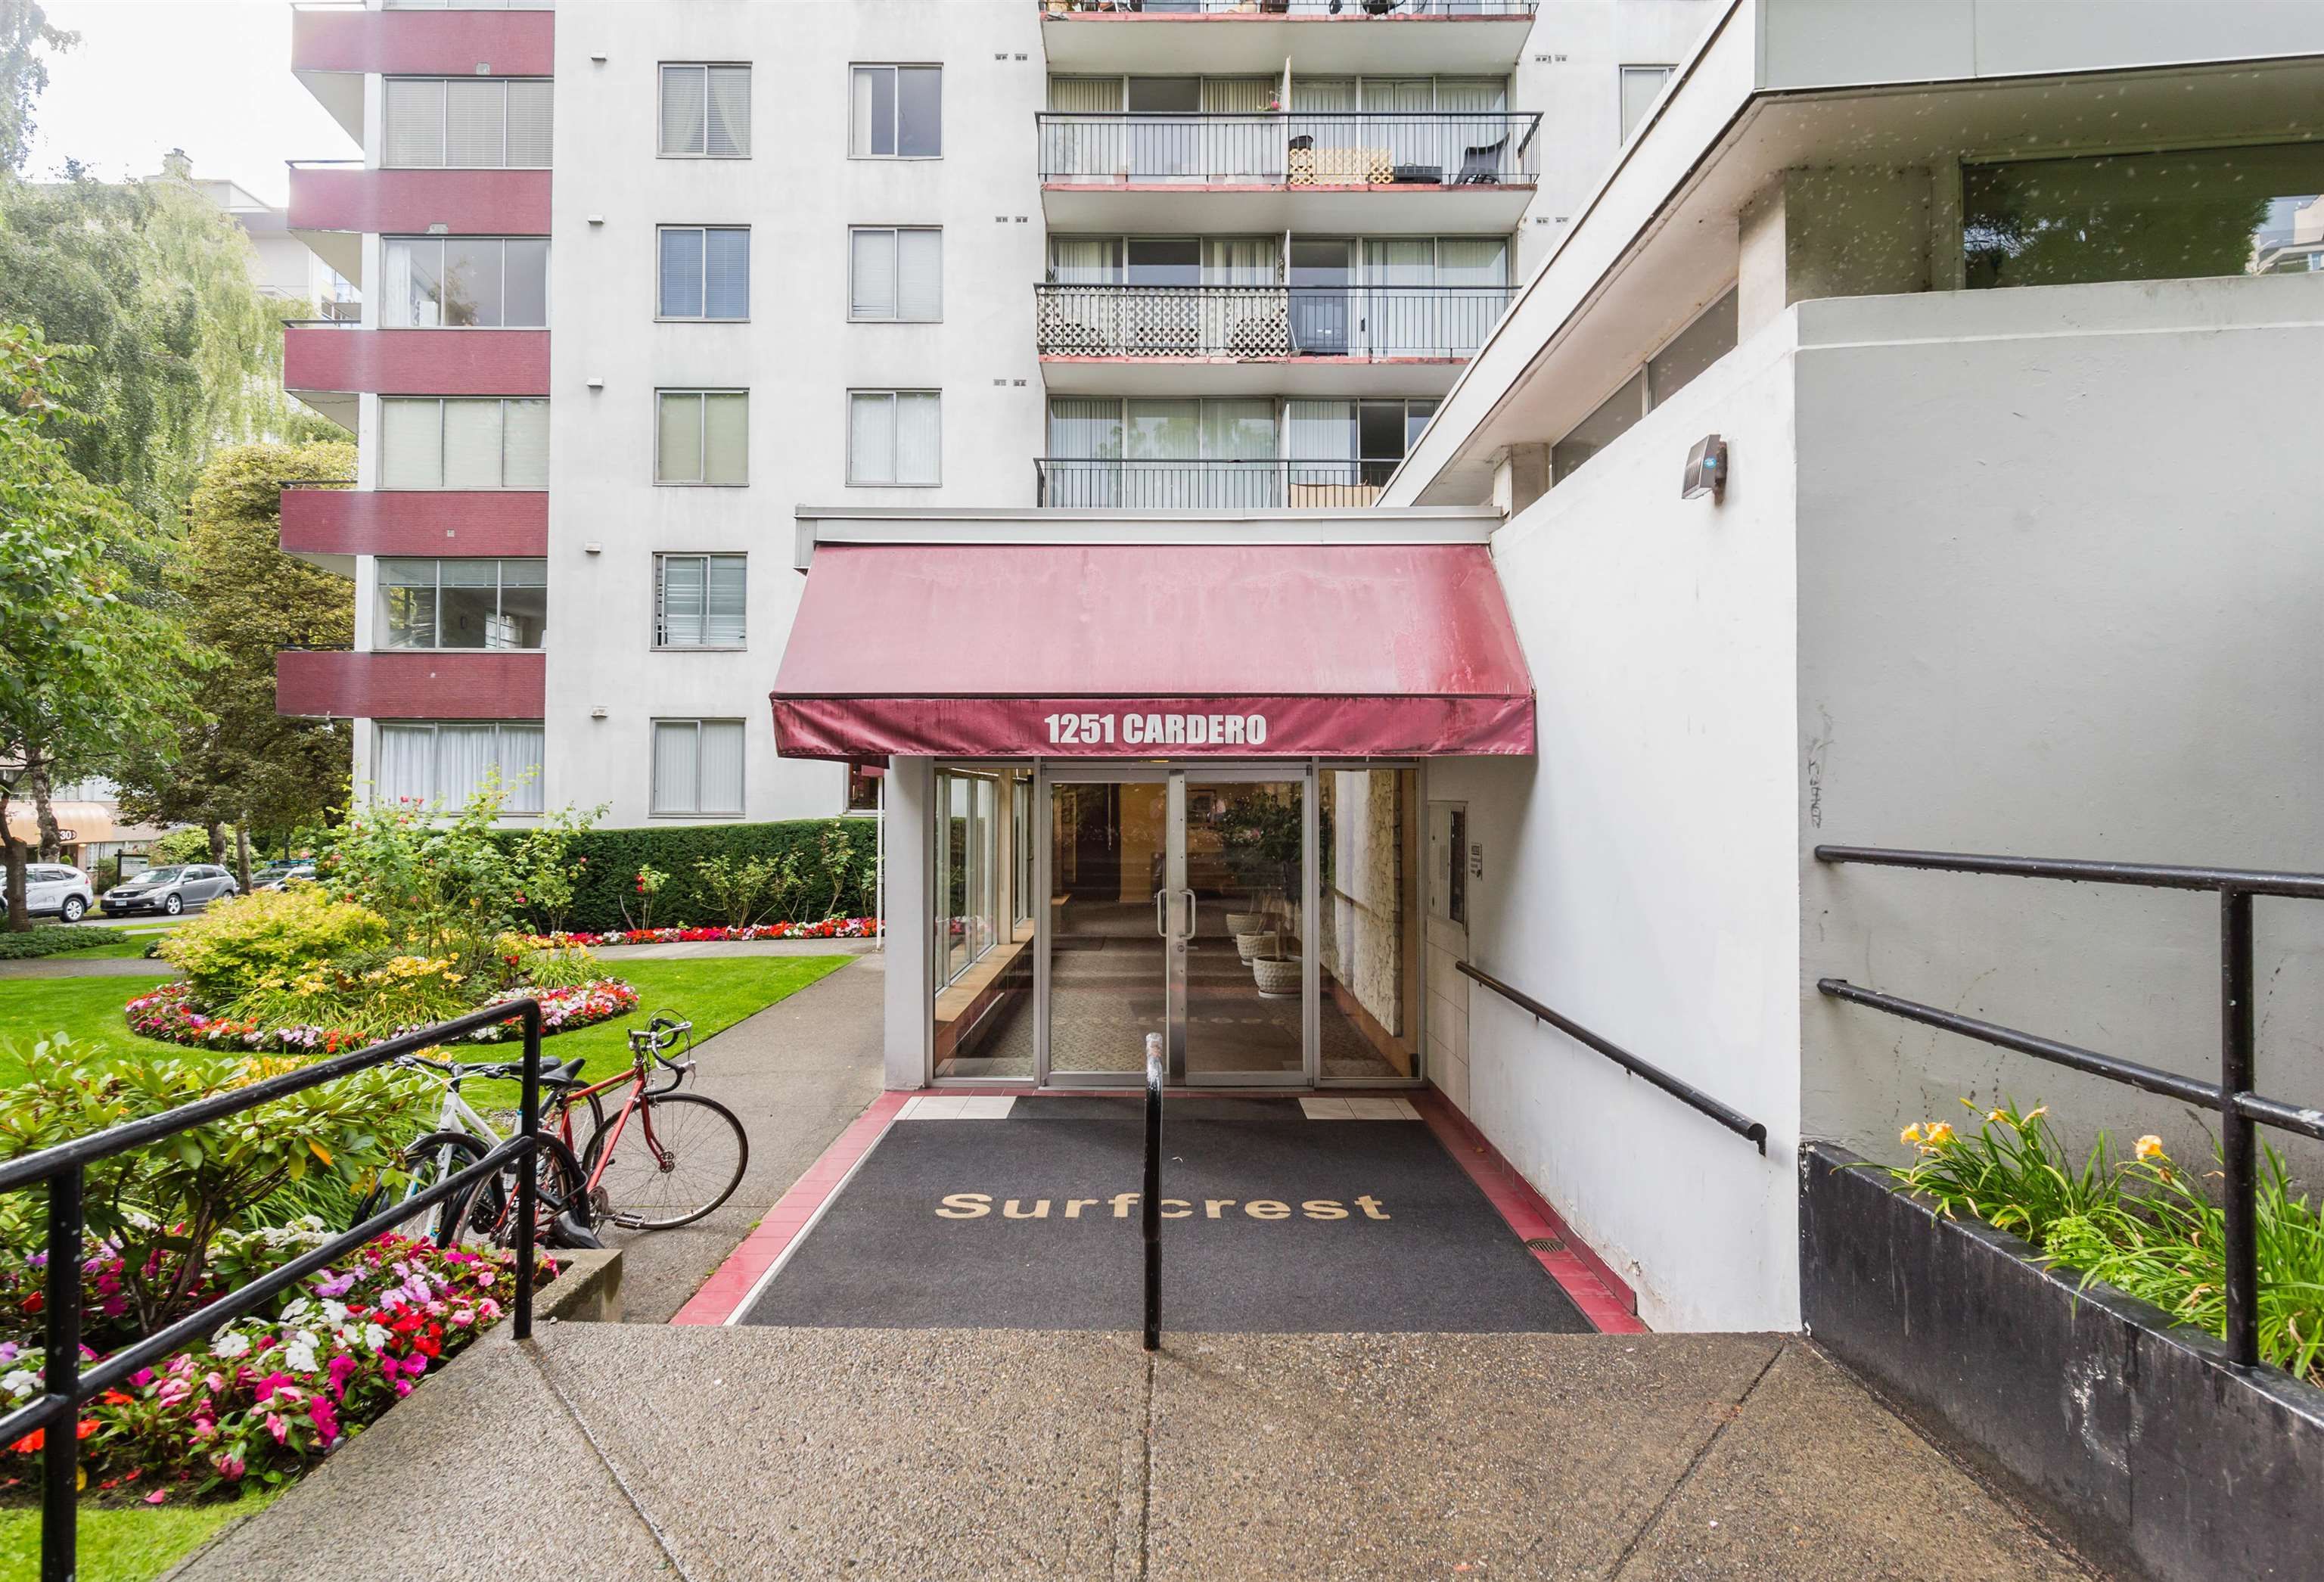 806 1251 CARDERO STREET - West End VW Apartment/Condo for sale, 1 Bedroom (R2625738) - #28